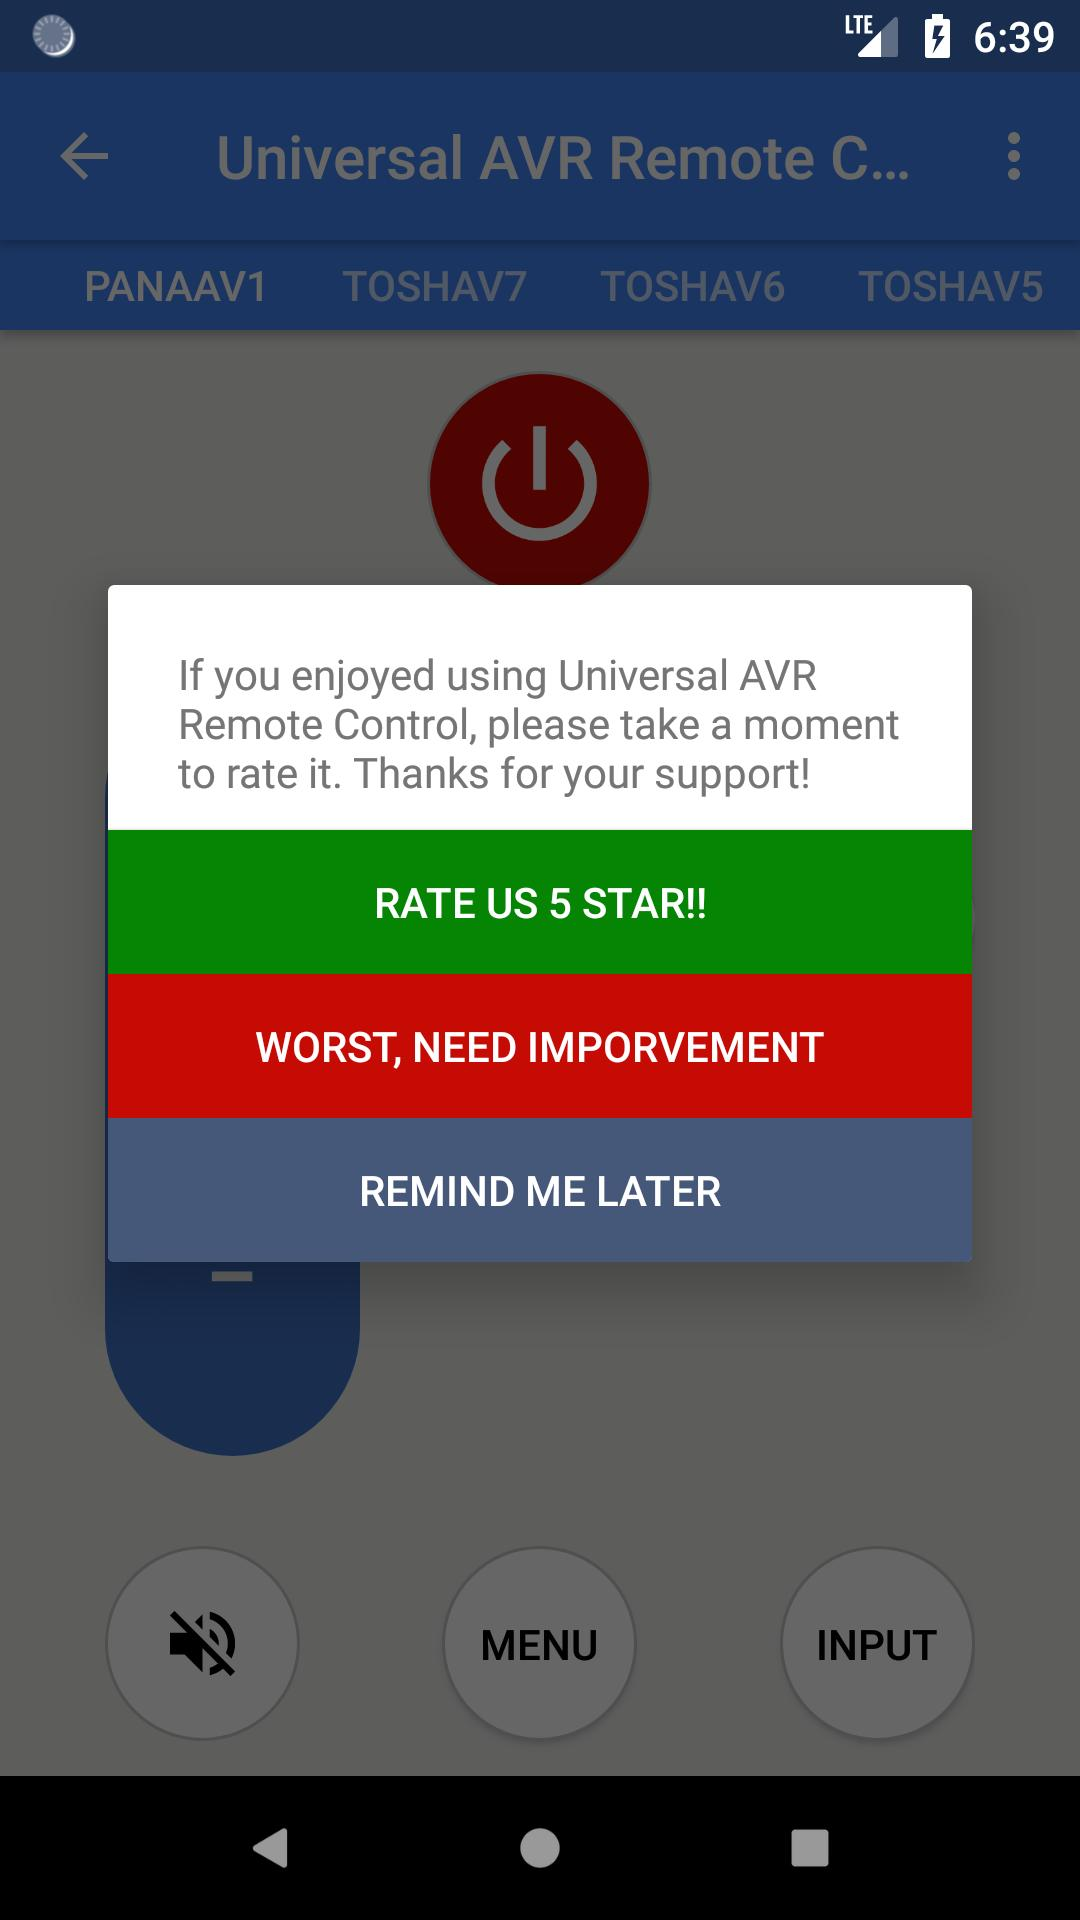 Universal AVR Remote Control for Android - APK Download